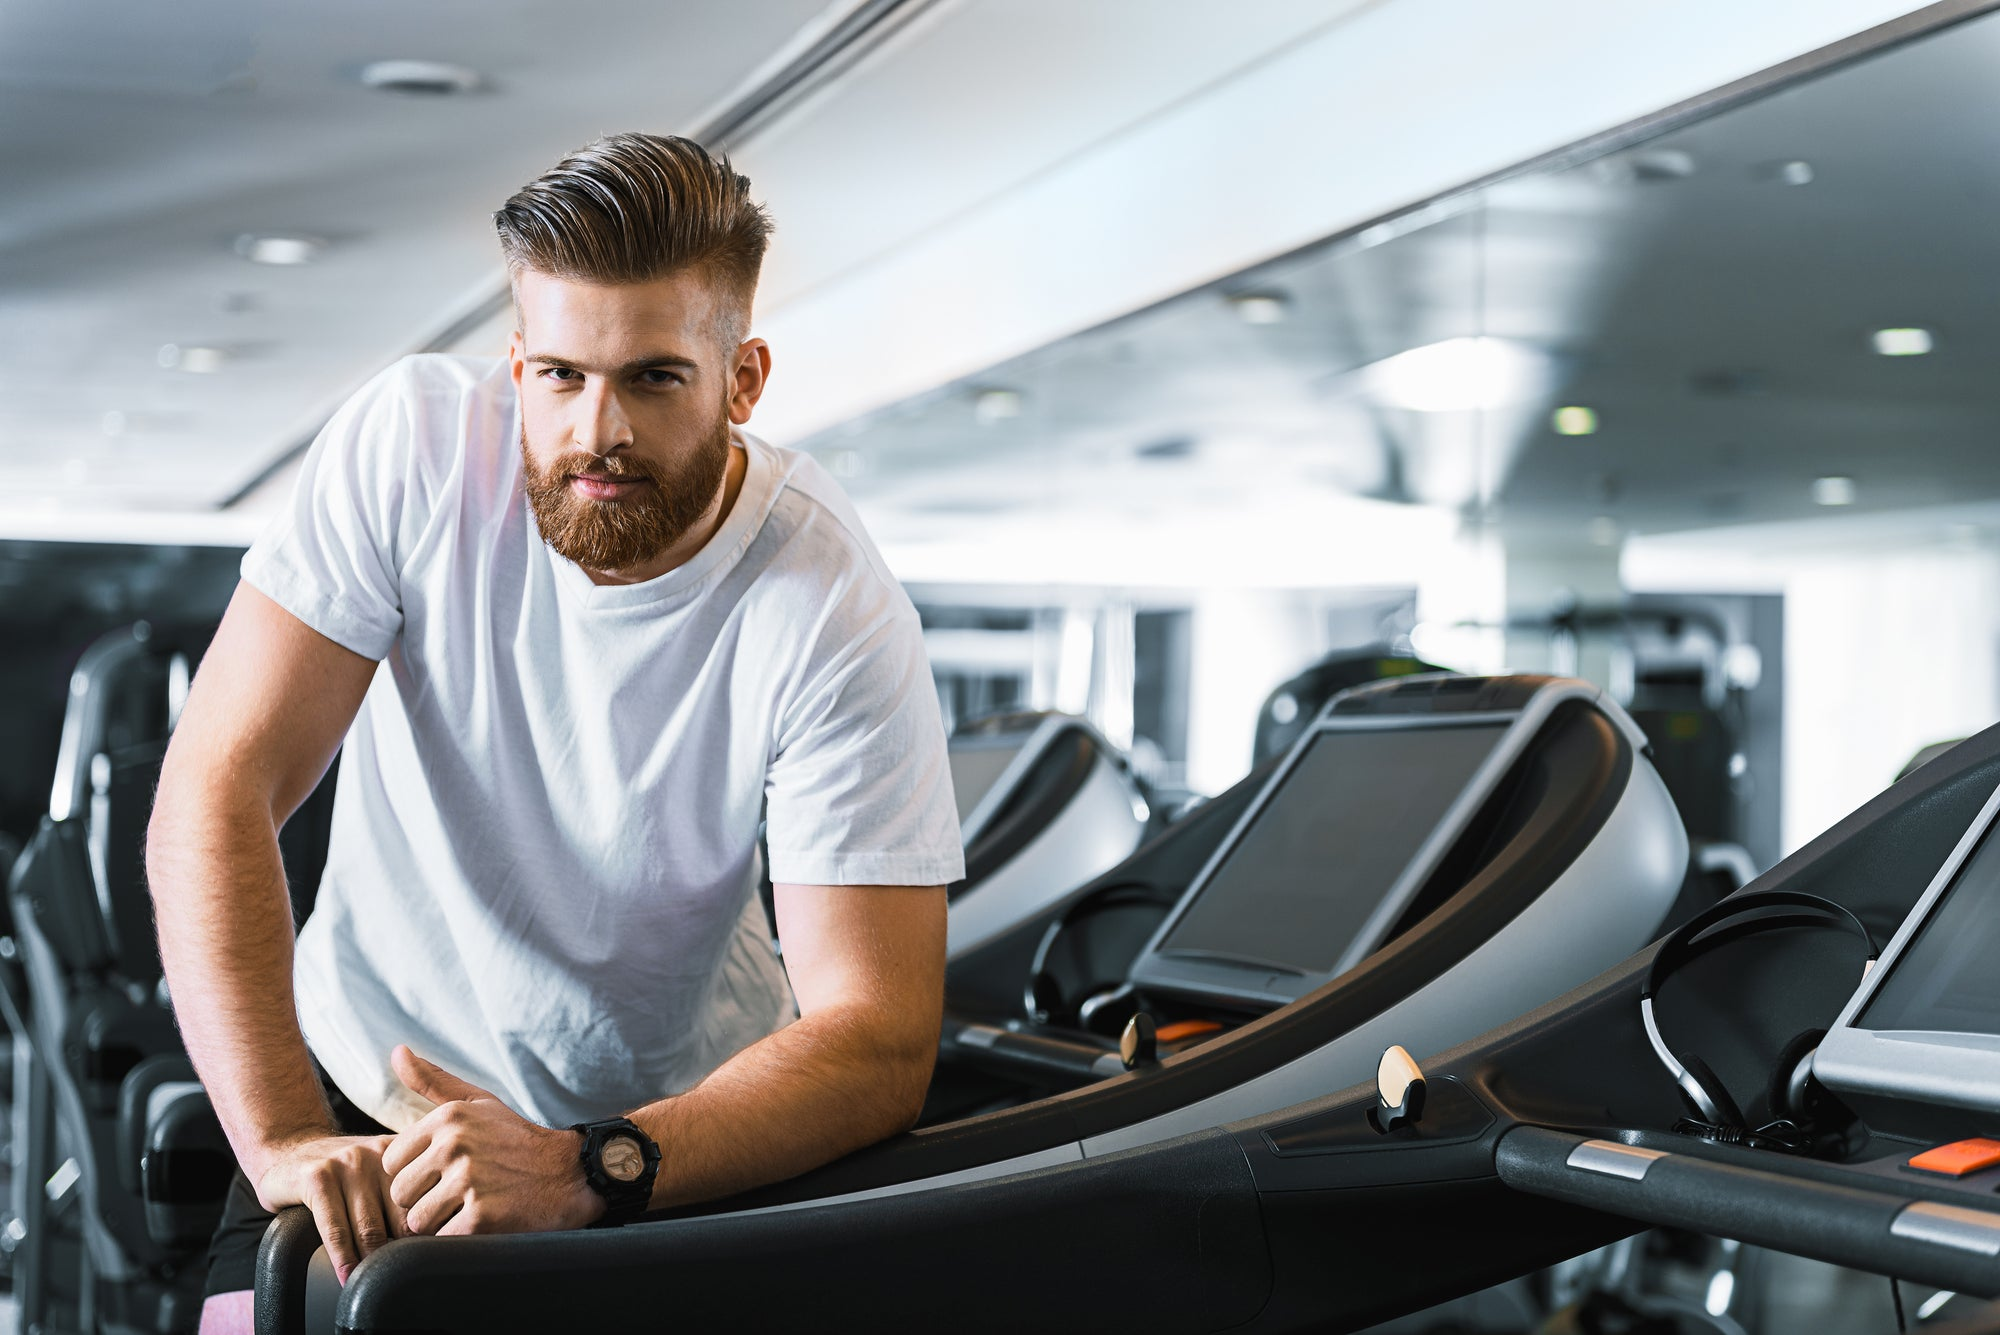 5 Benefits of Incline Treadmill Walking